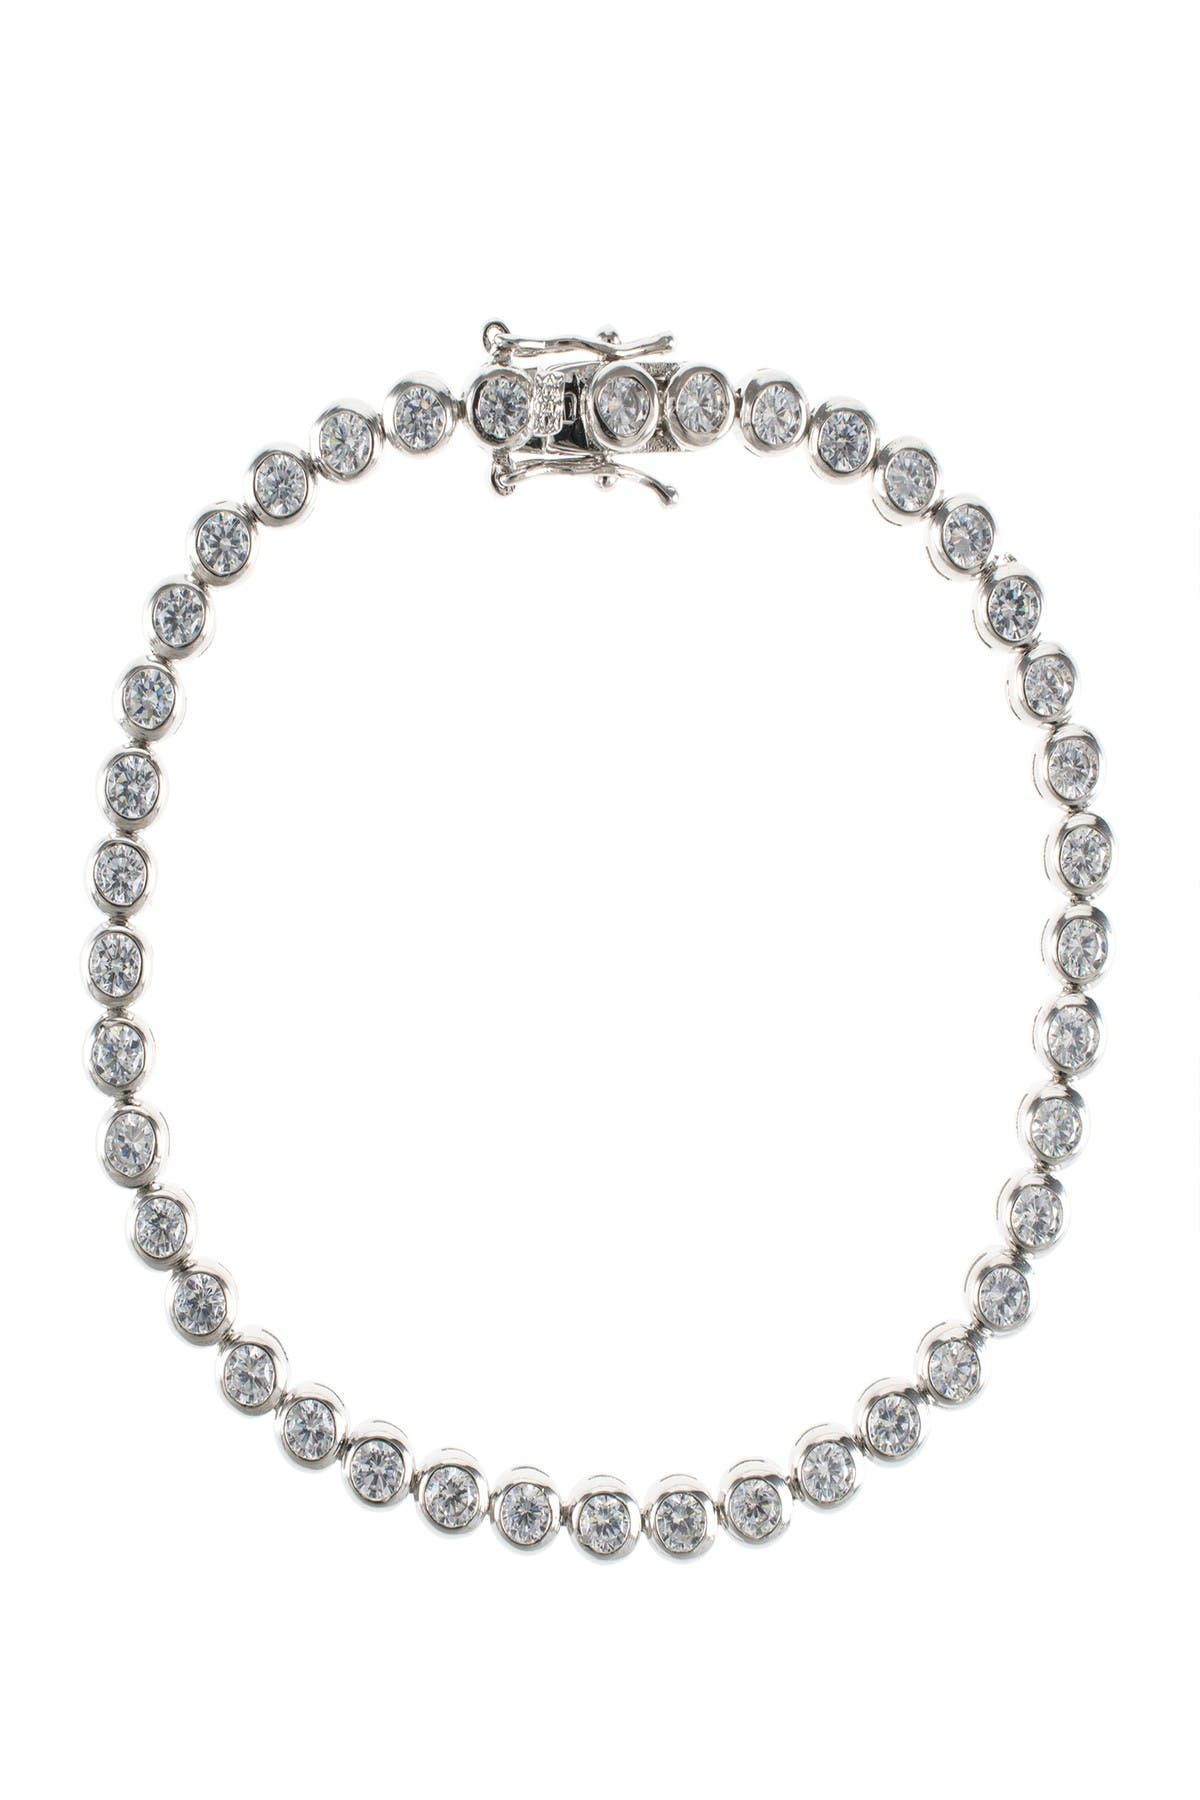 Image of CZ By Kenneth Jay Lane Round CZ Tennis Bracelet